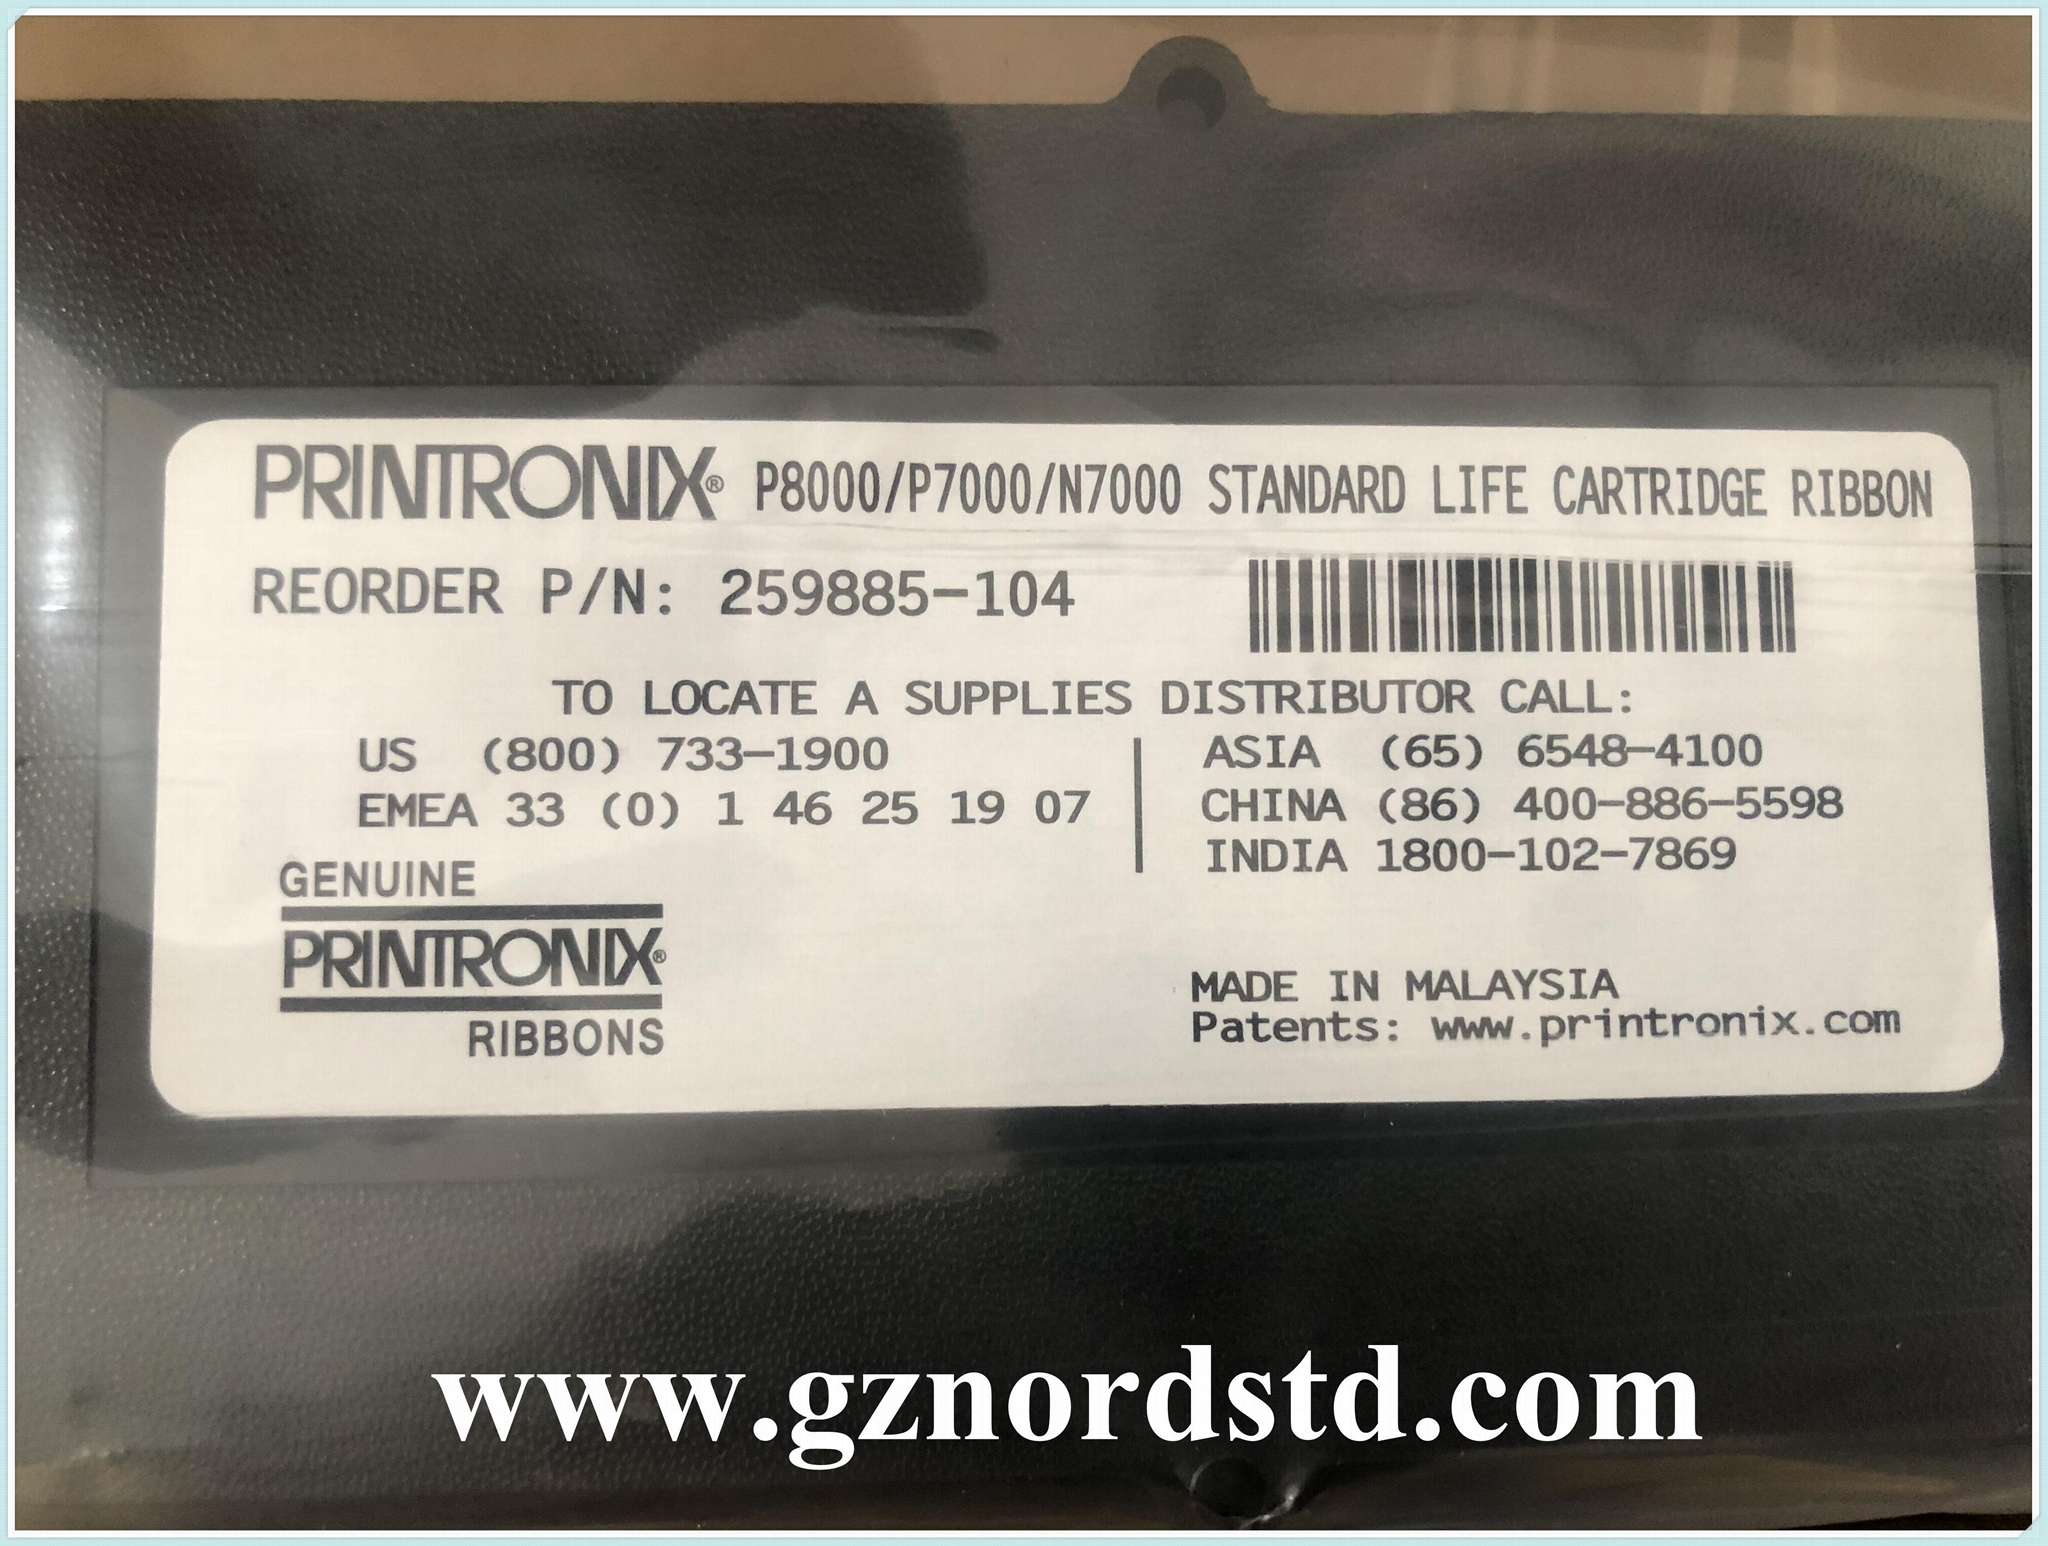 259885-104 New Original Printronix Ribbon Cartridges for P8000 P7000 series 1